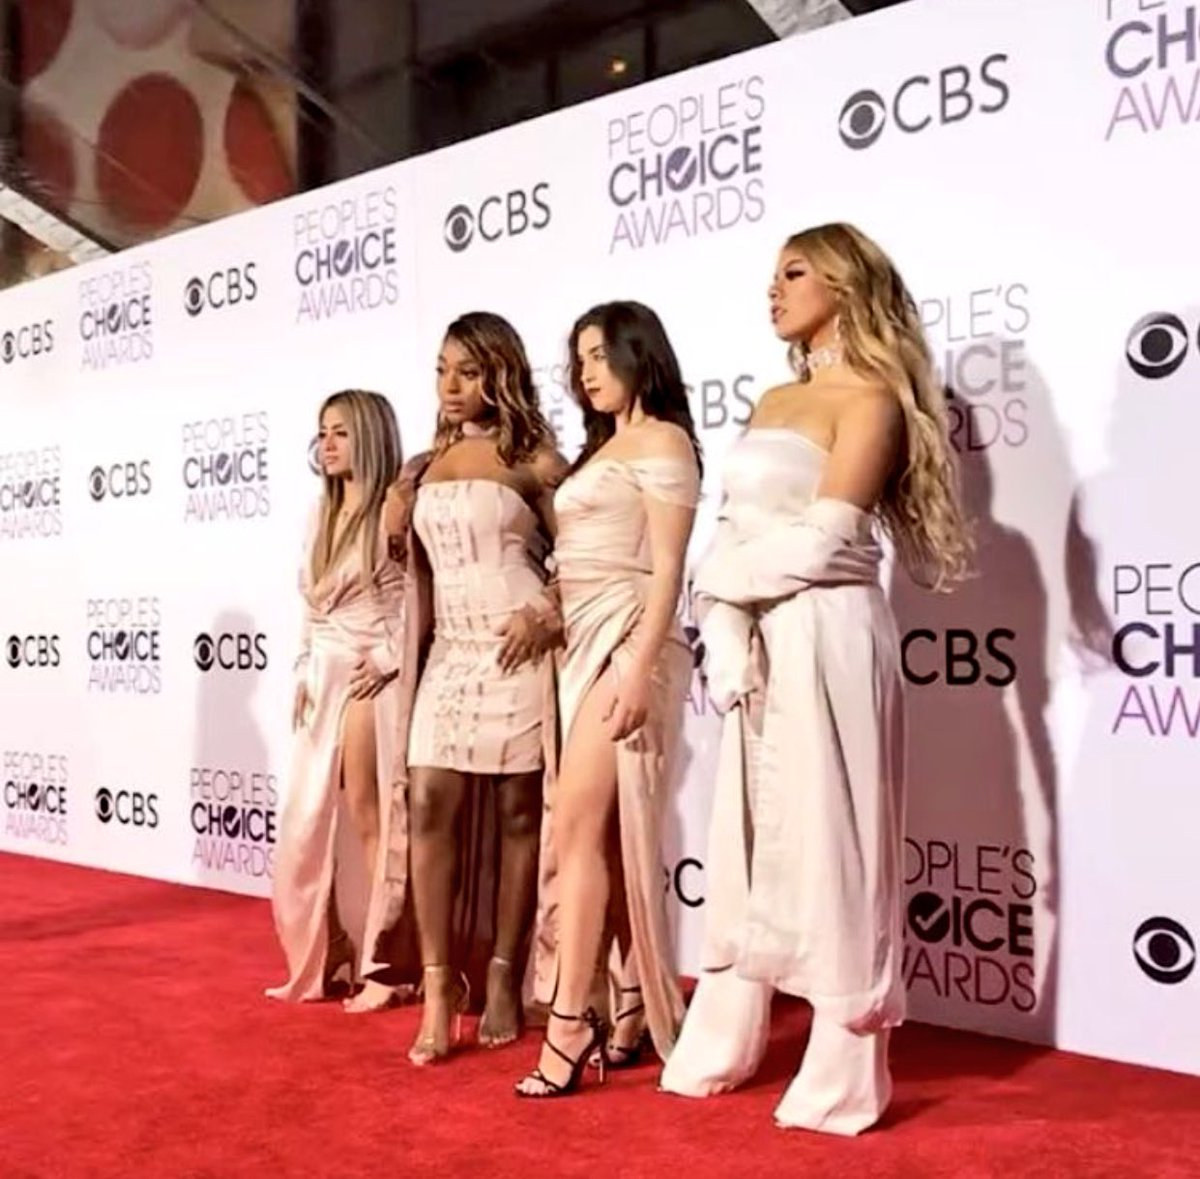 Time to impress! @FifthHarmony #PCAs #PCAs2017 #PeoplesChoiceAwards https://t.co/d1JMXqphYy